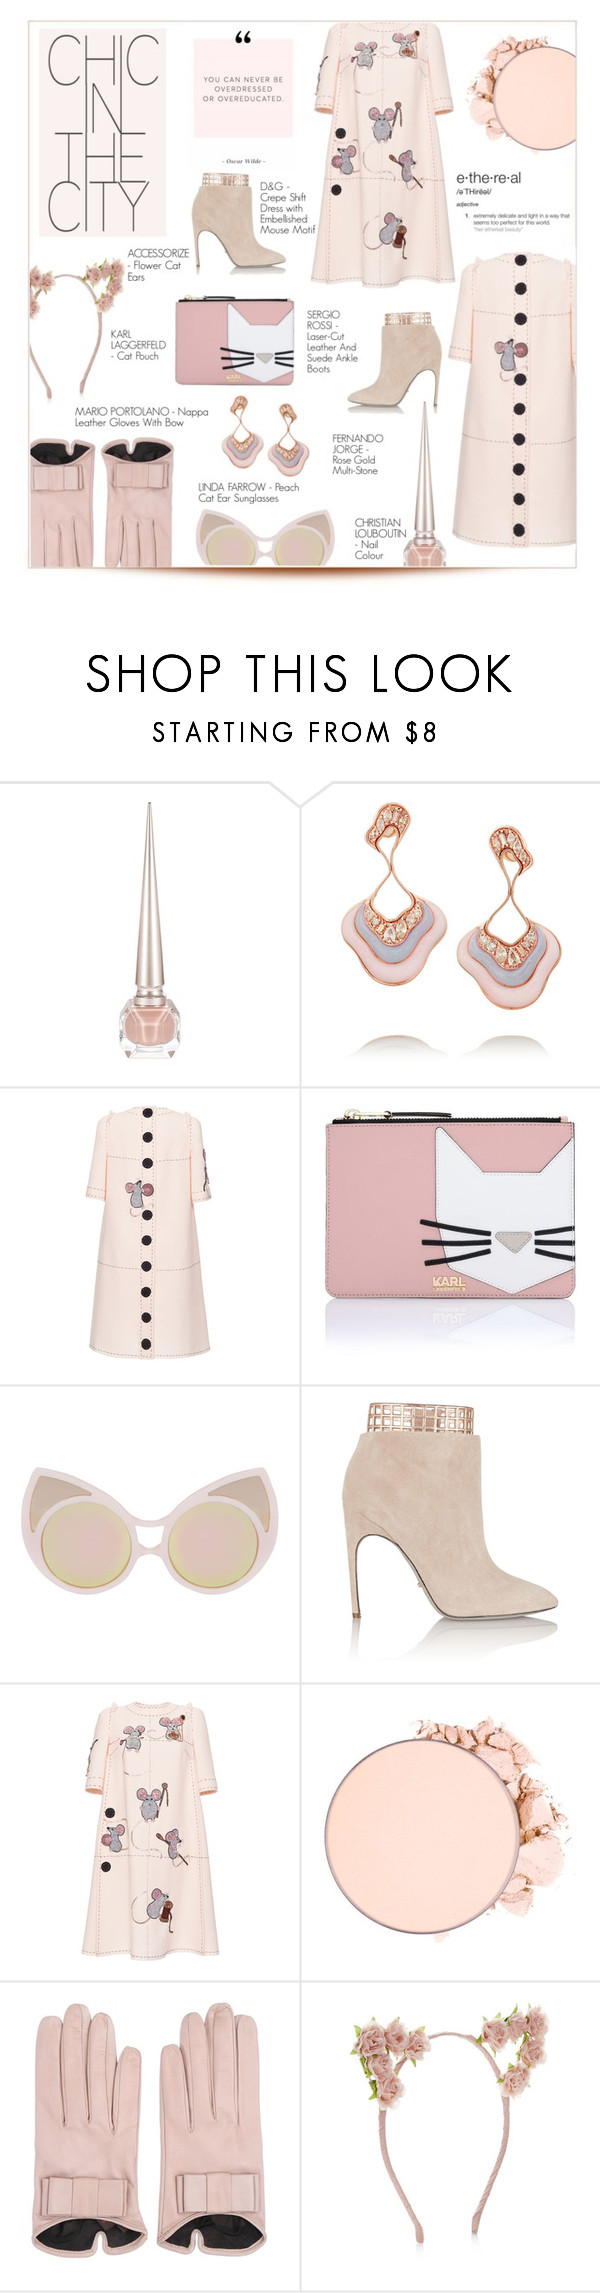 """""""ETHEREAL"""" by larissa-takahassi ❤ liked on Polyvore featuring Christian Louboutin, Fernando Jorge, Dolce&Gabbana, Karl Lagerfeld, Linda Farrow, Sergio Rossi, Mario Portolano, Accessorize, chic and city"""